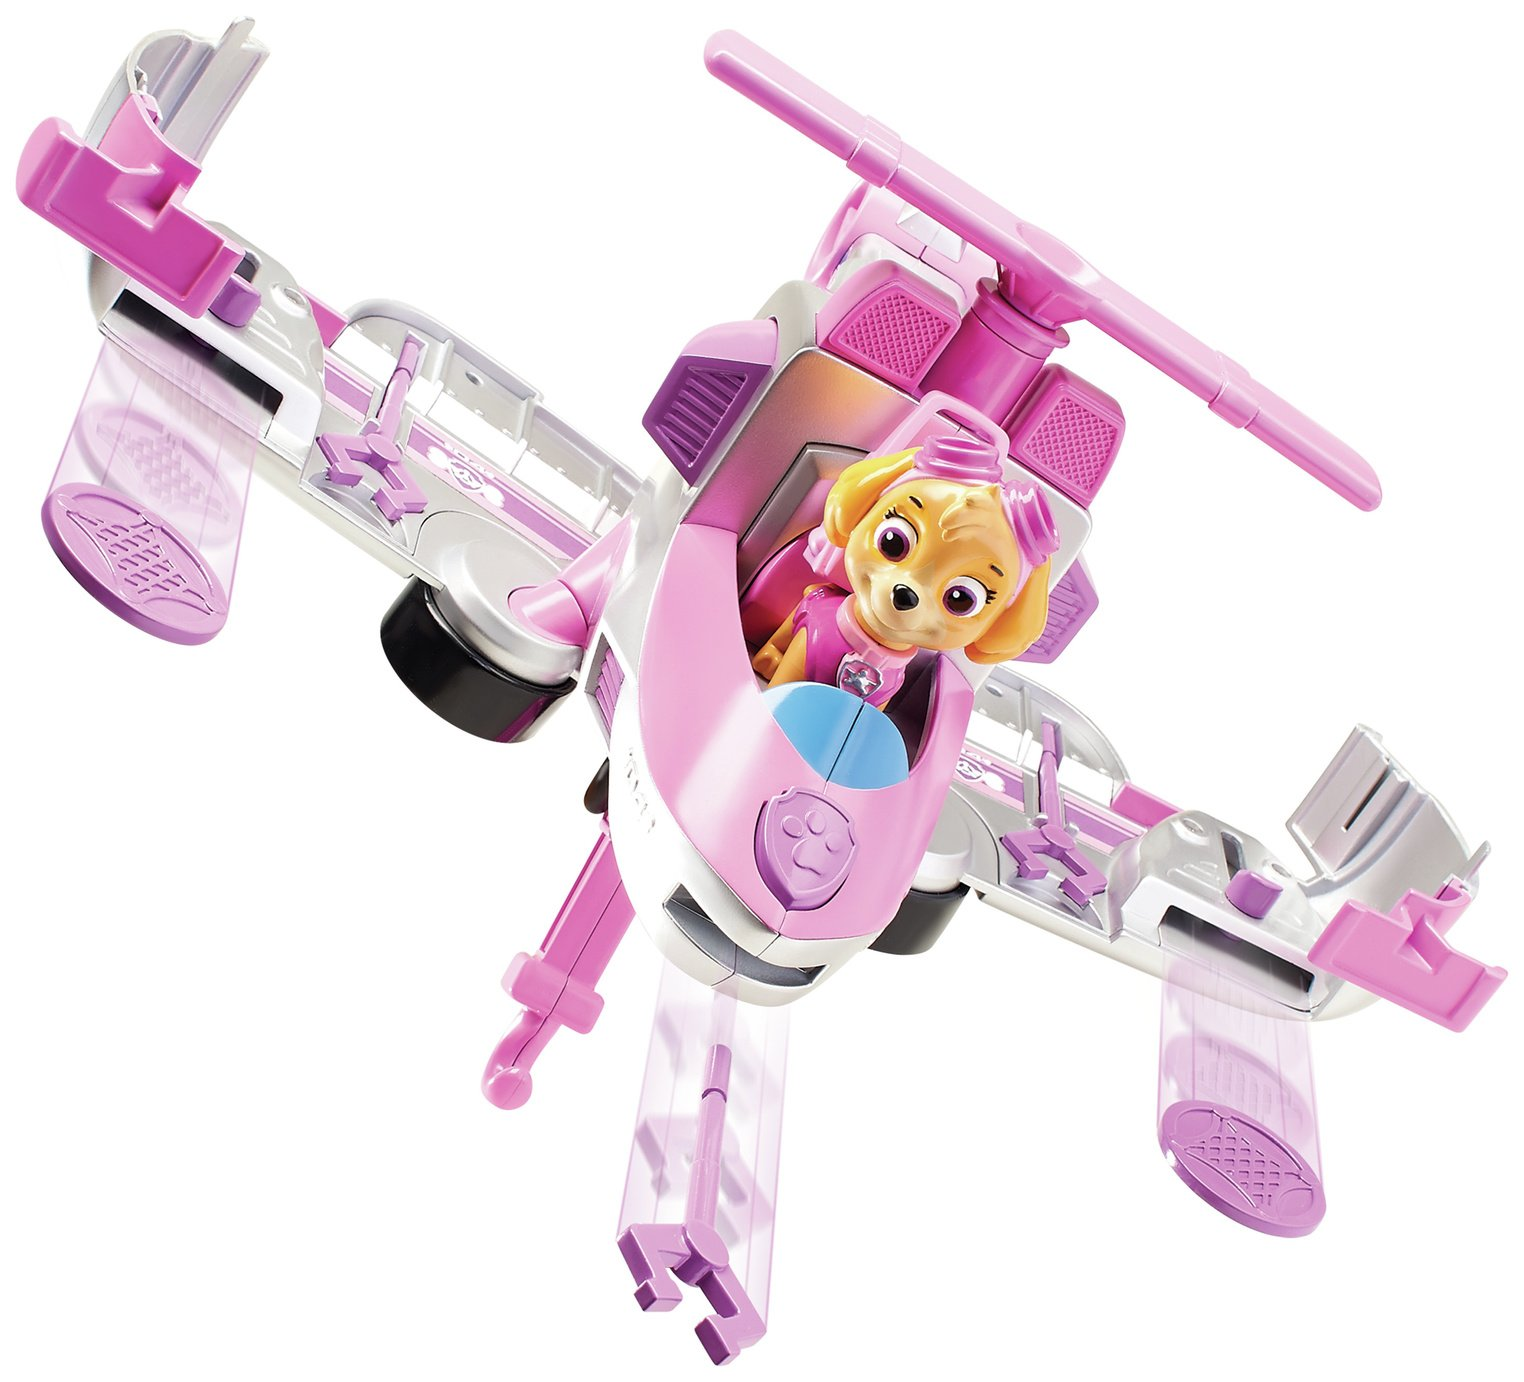 PAW Patrol Skye Flip & Fly Transforming Vehicle